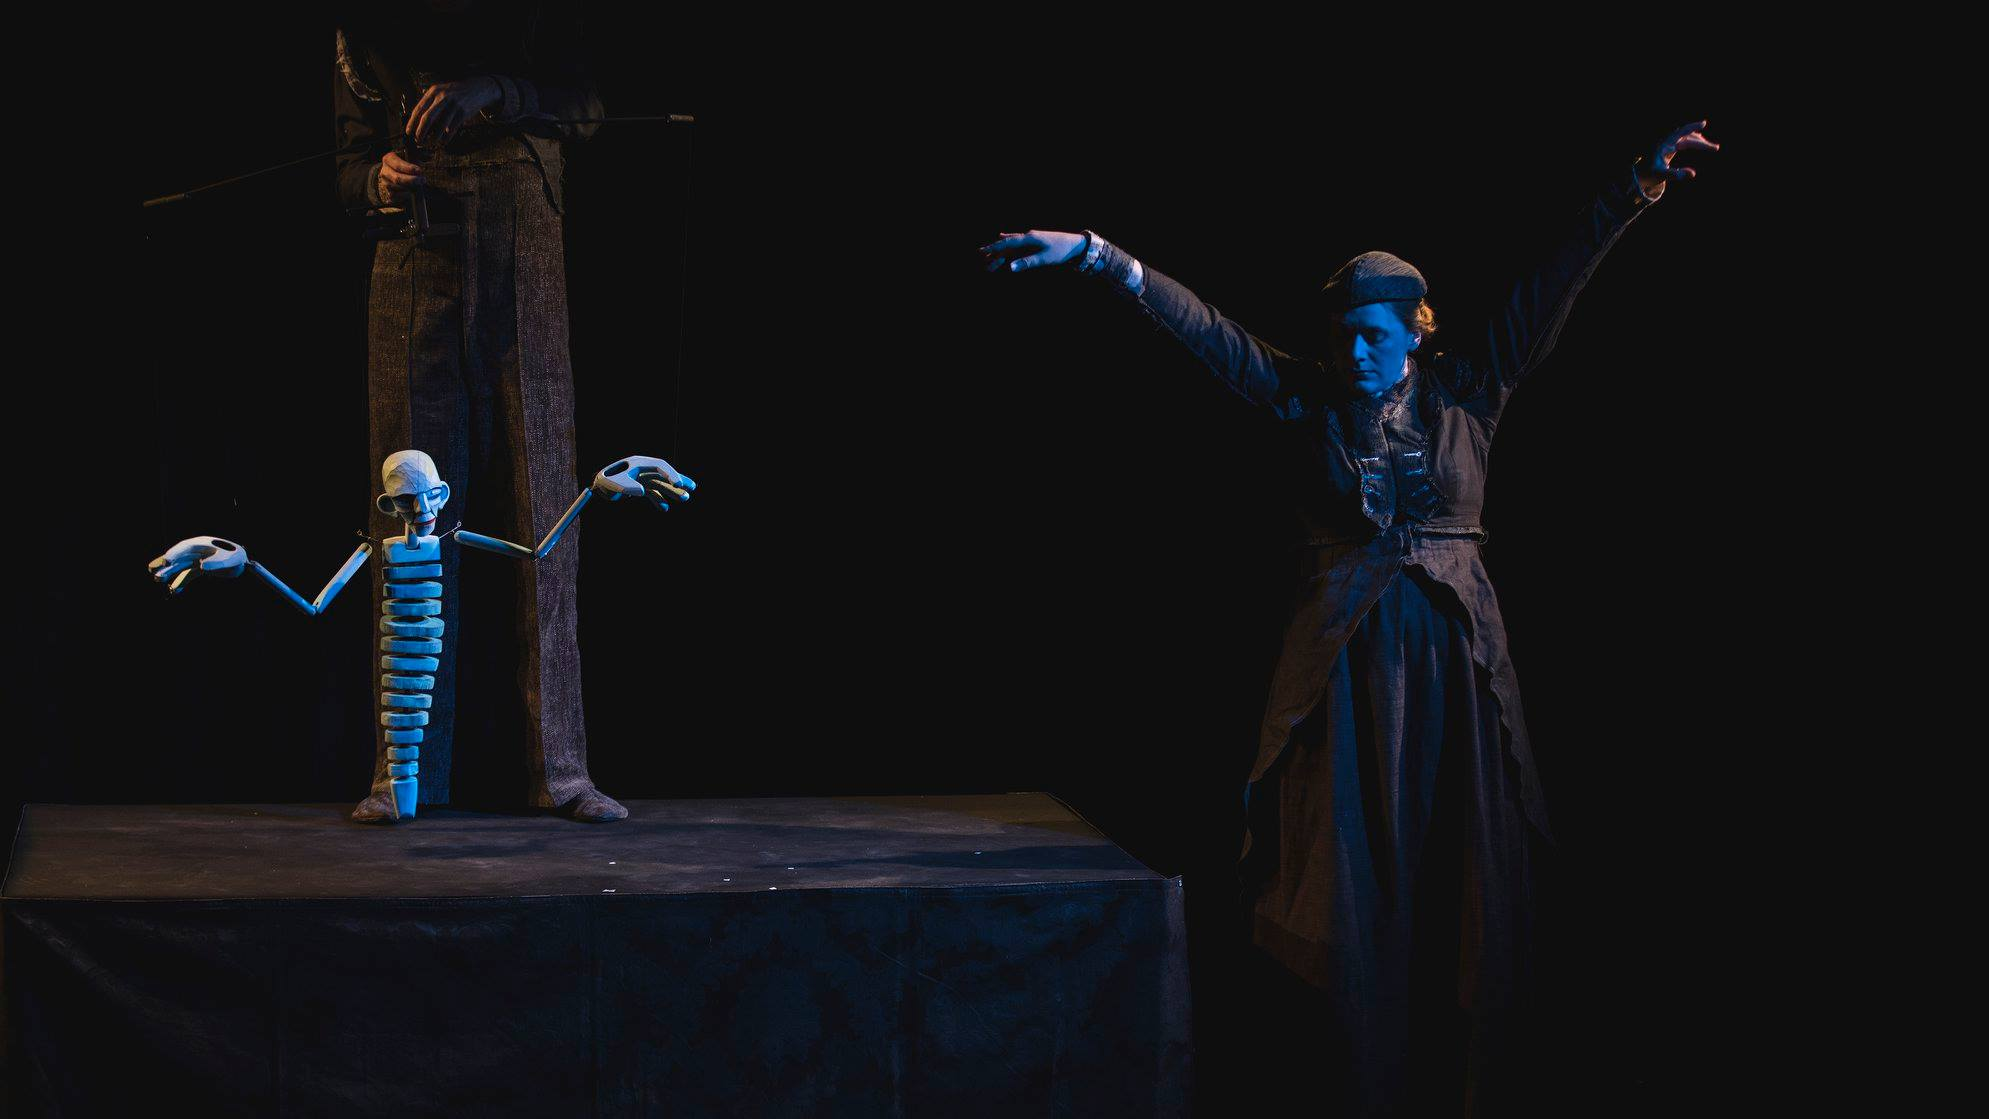 a performer stands next to a puppet on a dark stage they both have their arms in the air